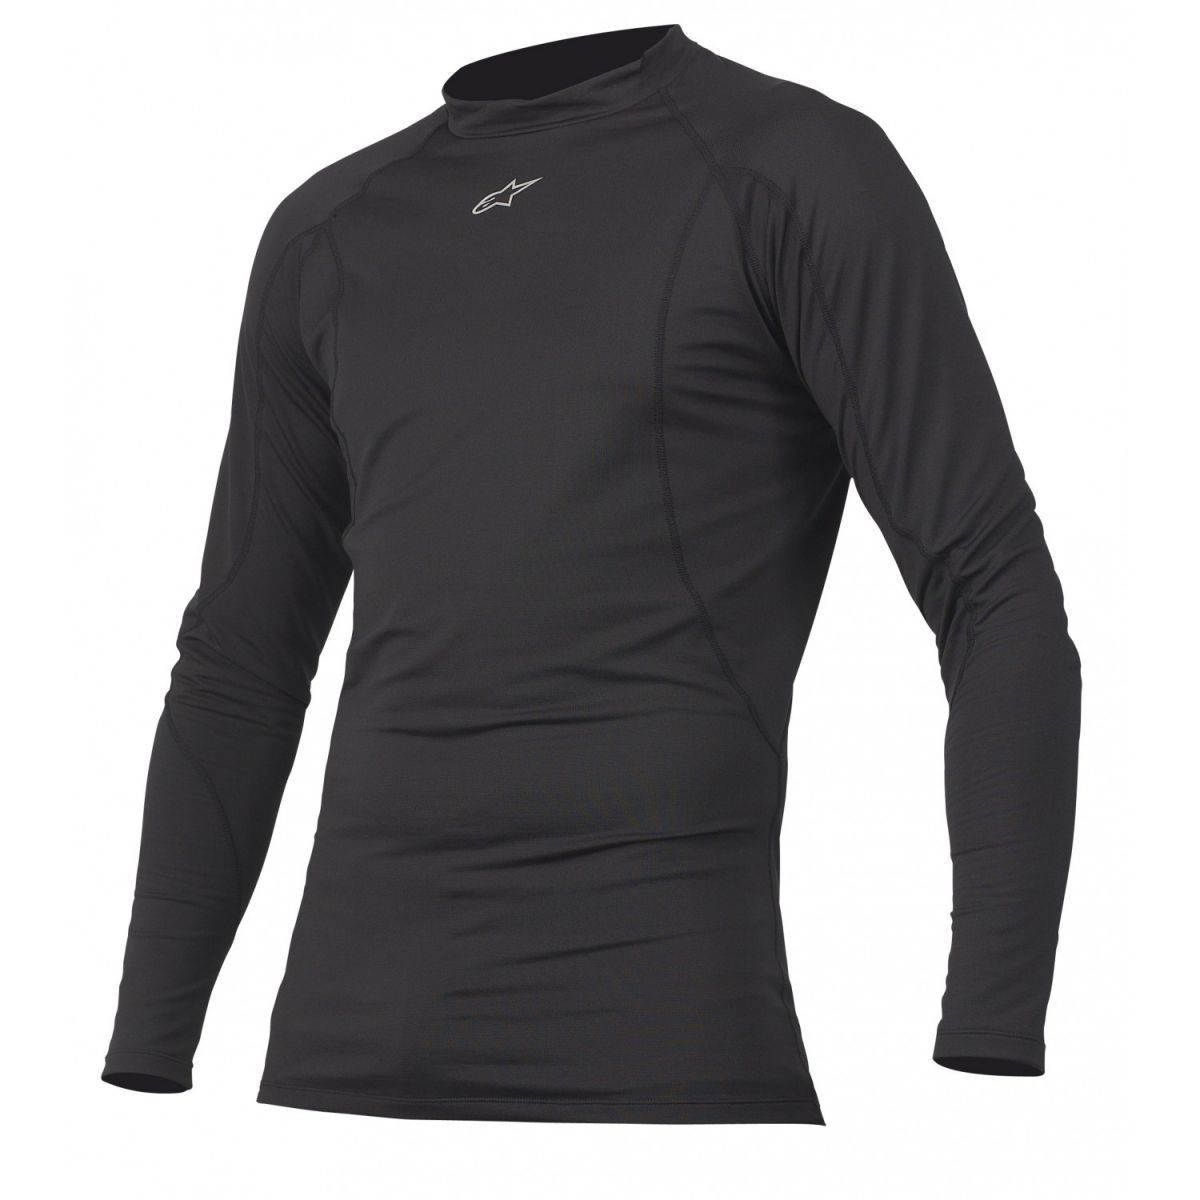 Camiseta Alpinestars Thermal Tech Top